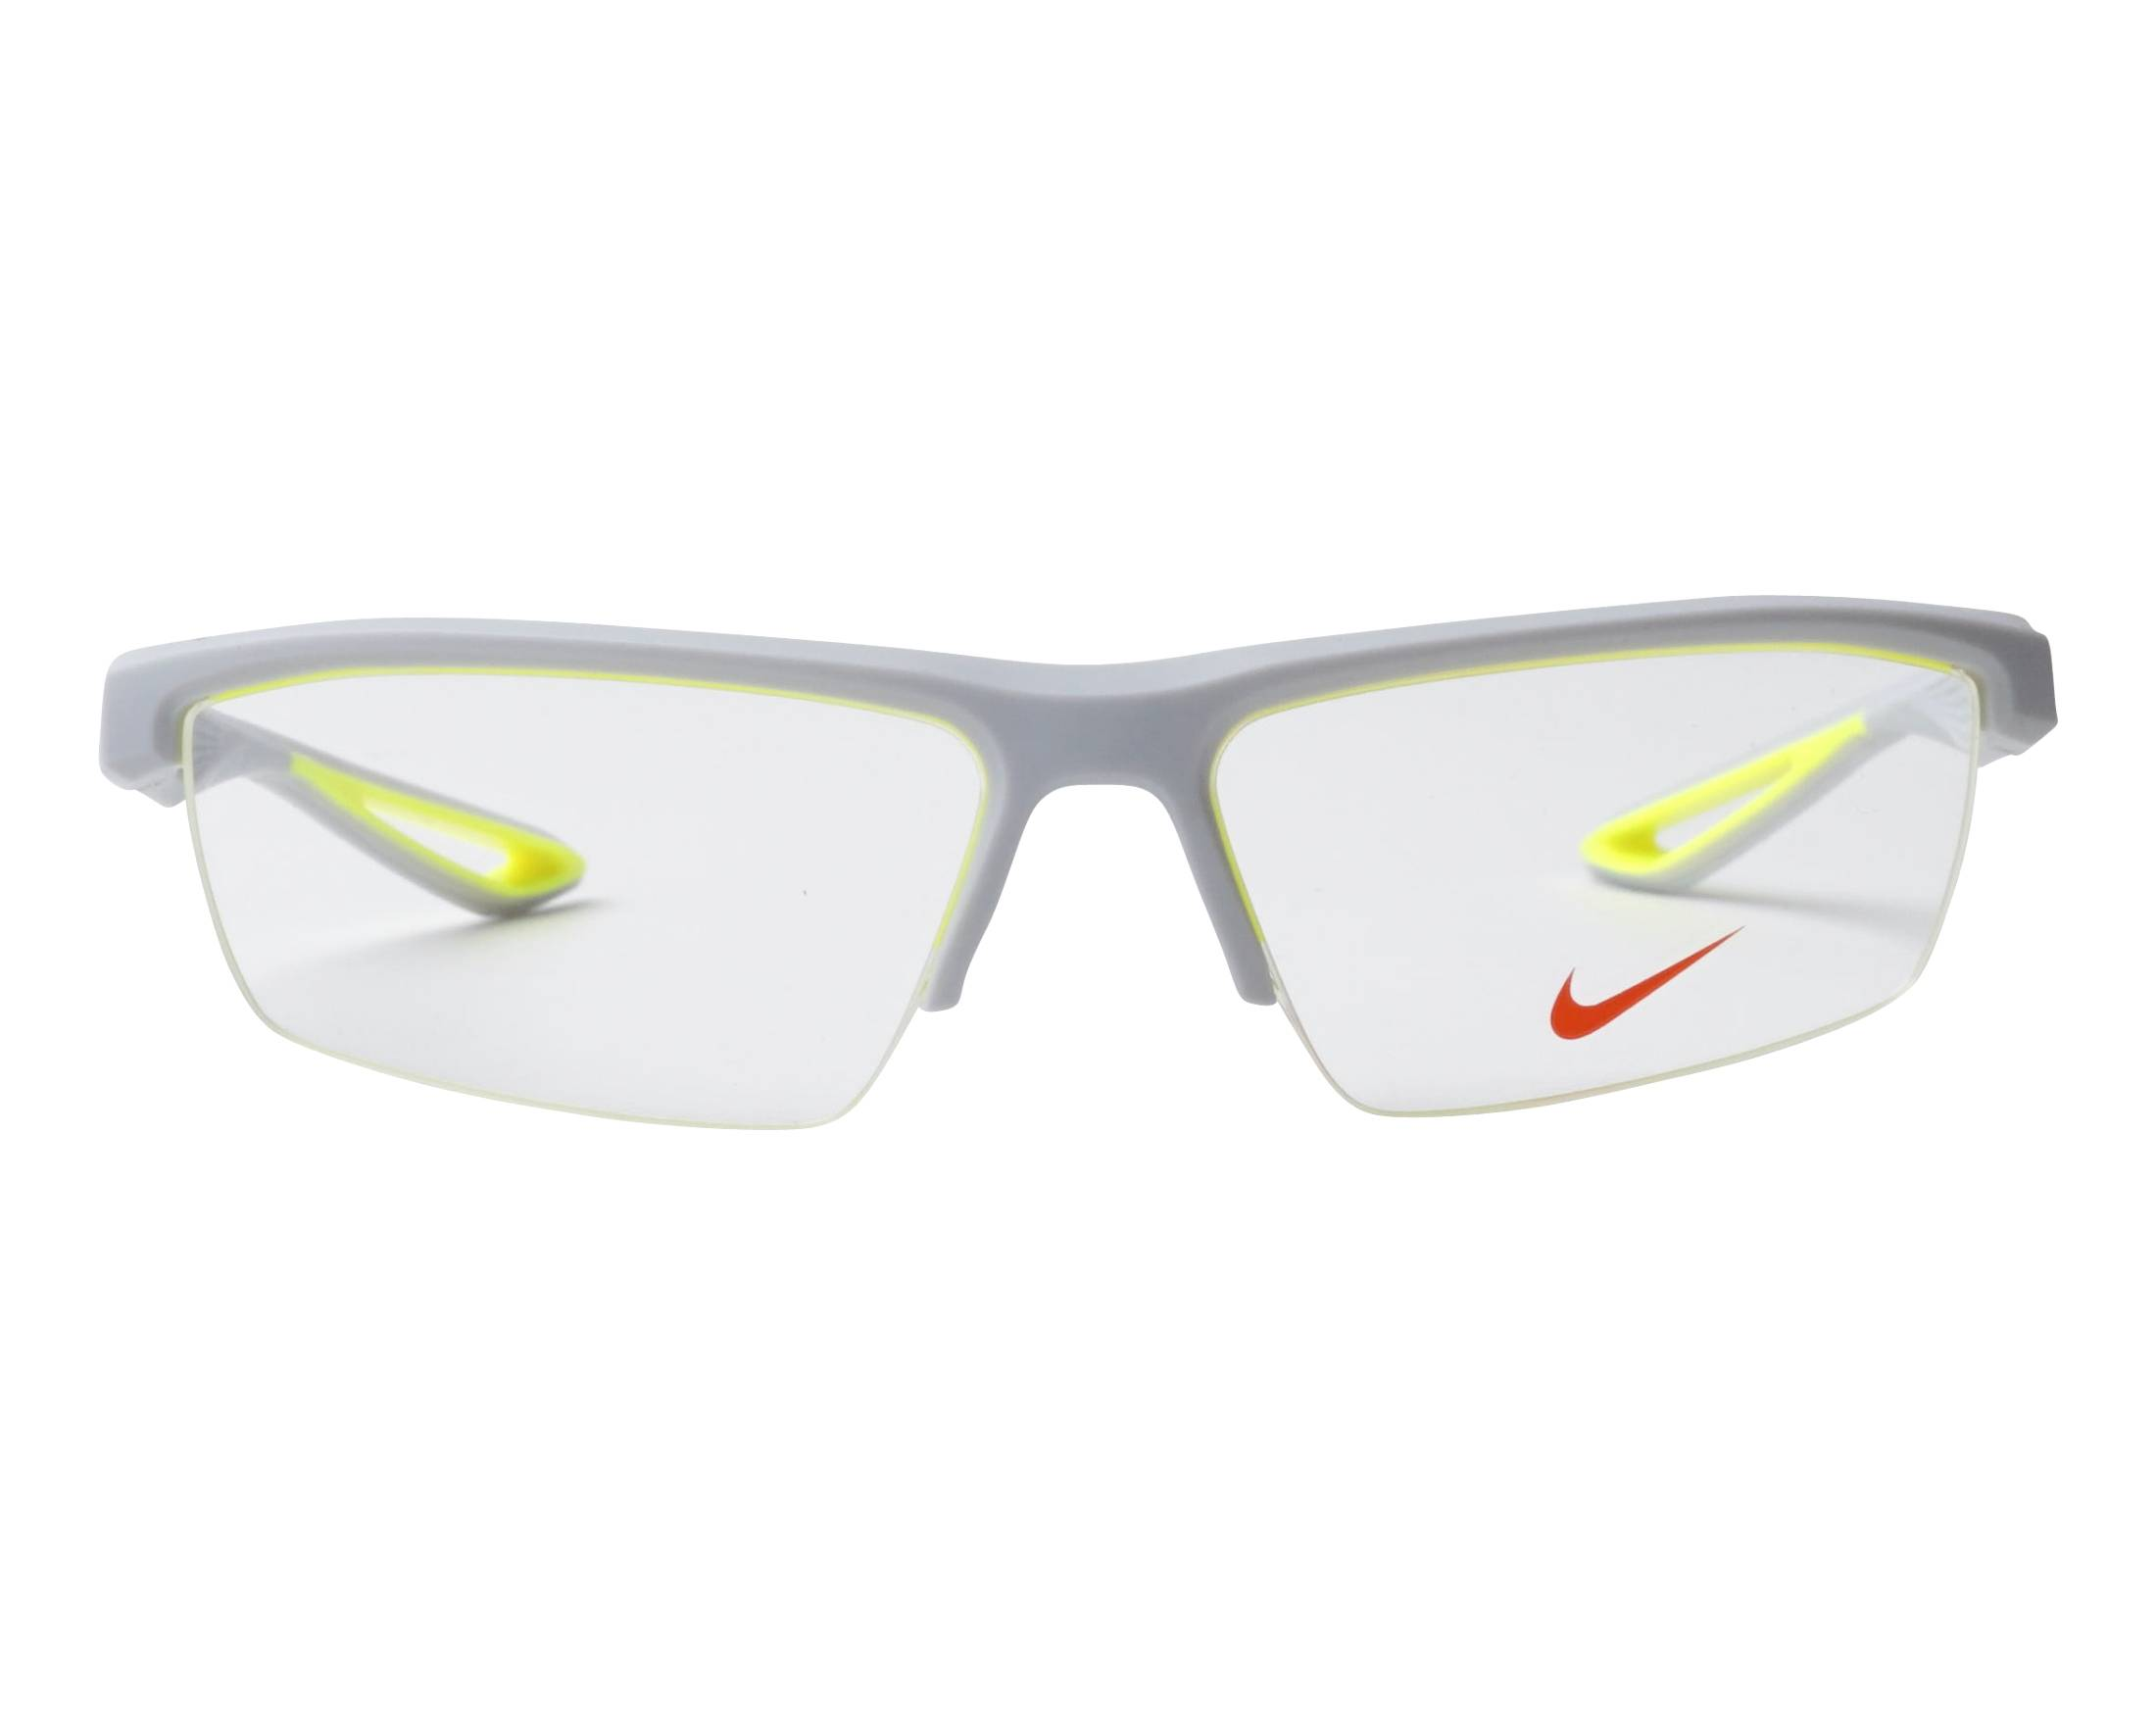 eyeglasses Nike 7079 040 57-15 Grey Yellow front view 04a20567df30a